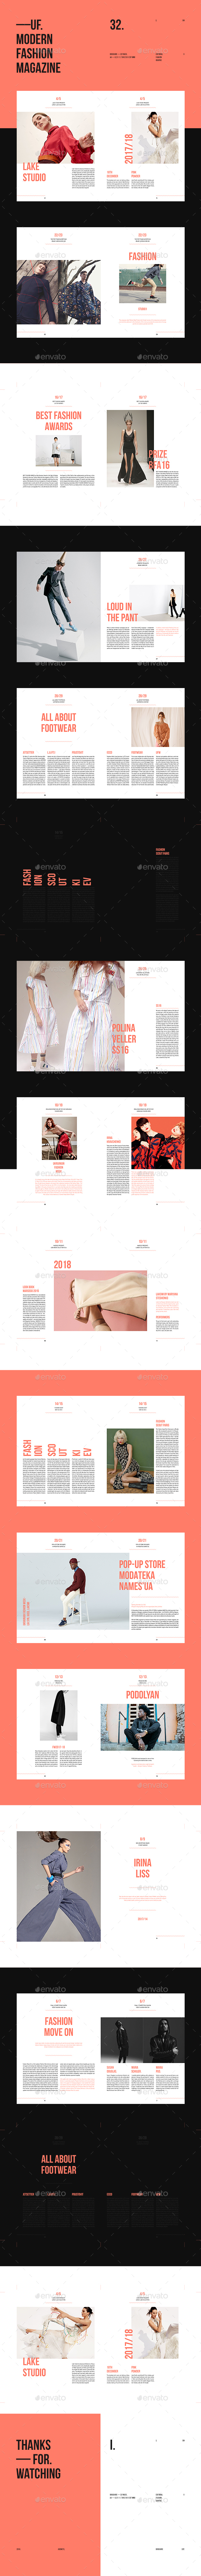 UF — Fashion Brochure Template - Brochures Print Templates